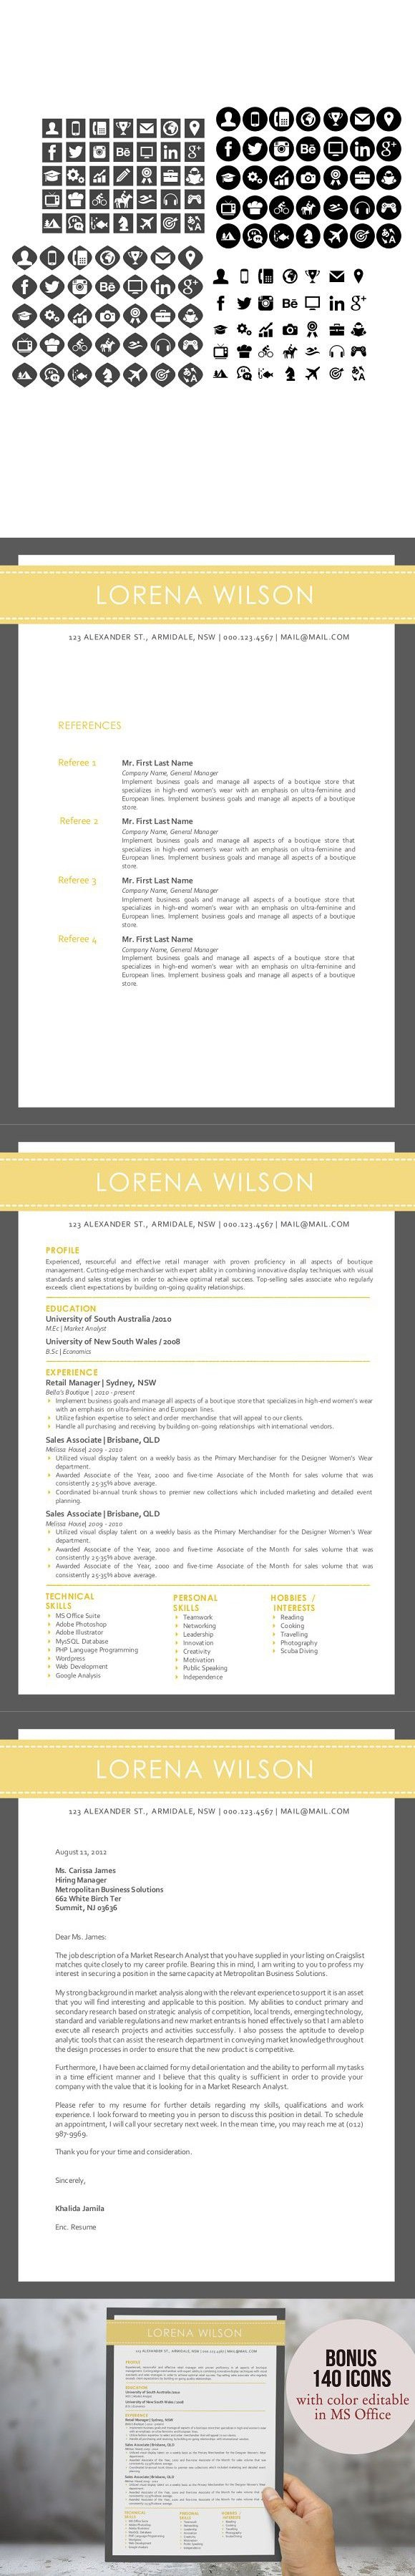 Brand Analyst Sample Resume 3 In 1 Simple Banner Word Resume #resumedesignformsword .